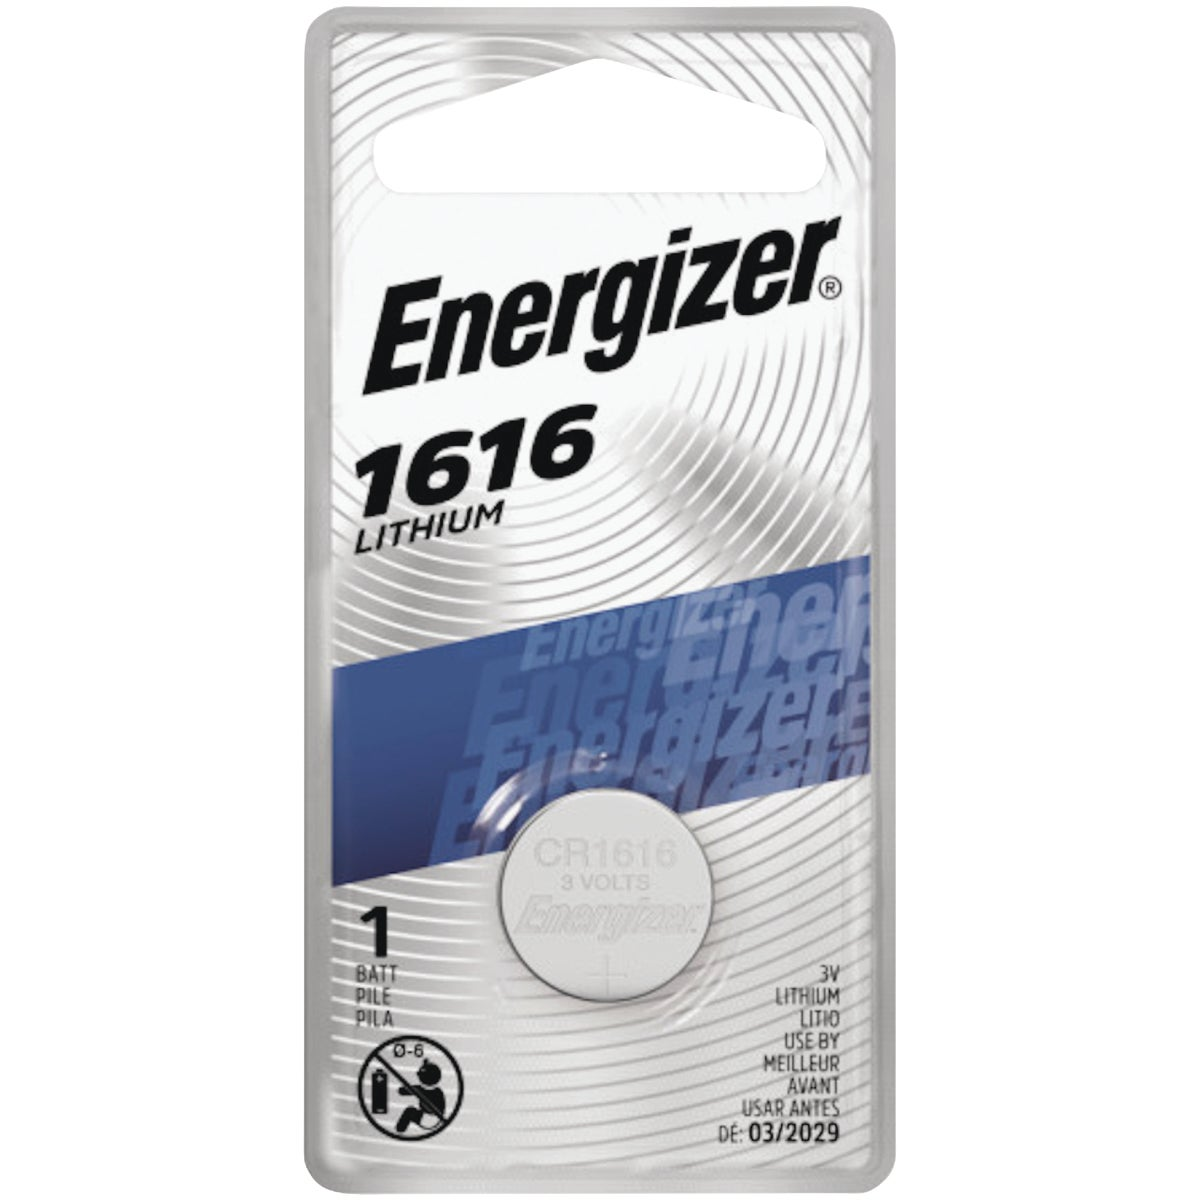 3V LITHIUM BATTERY - ECR1616BP by Energizer